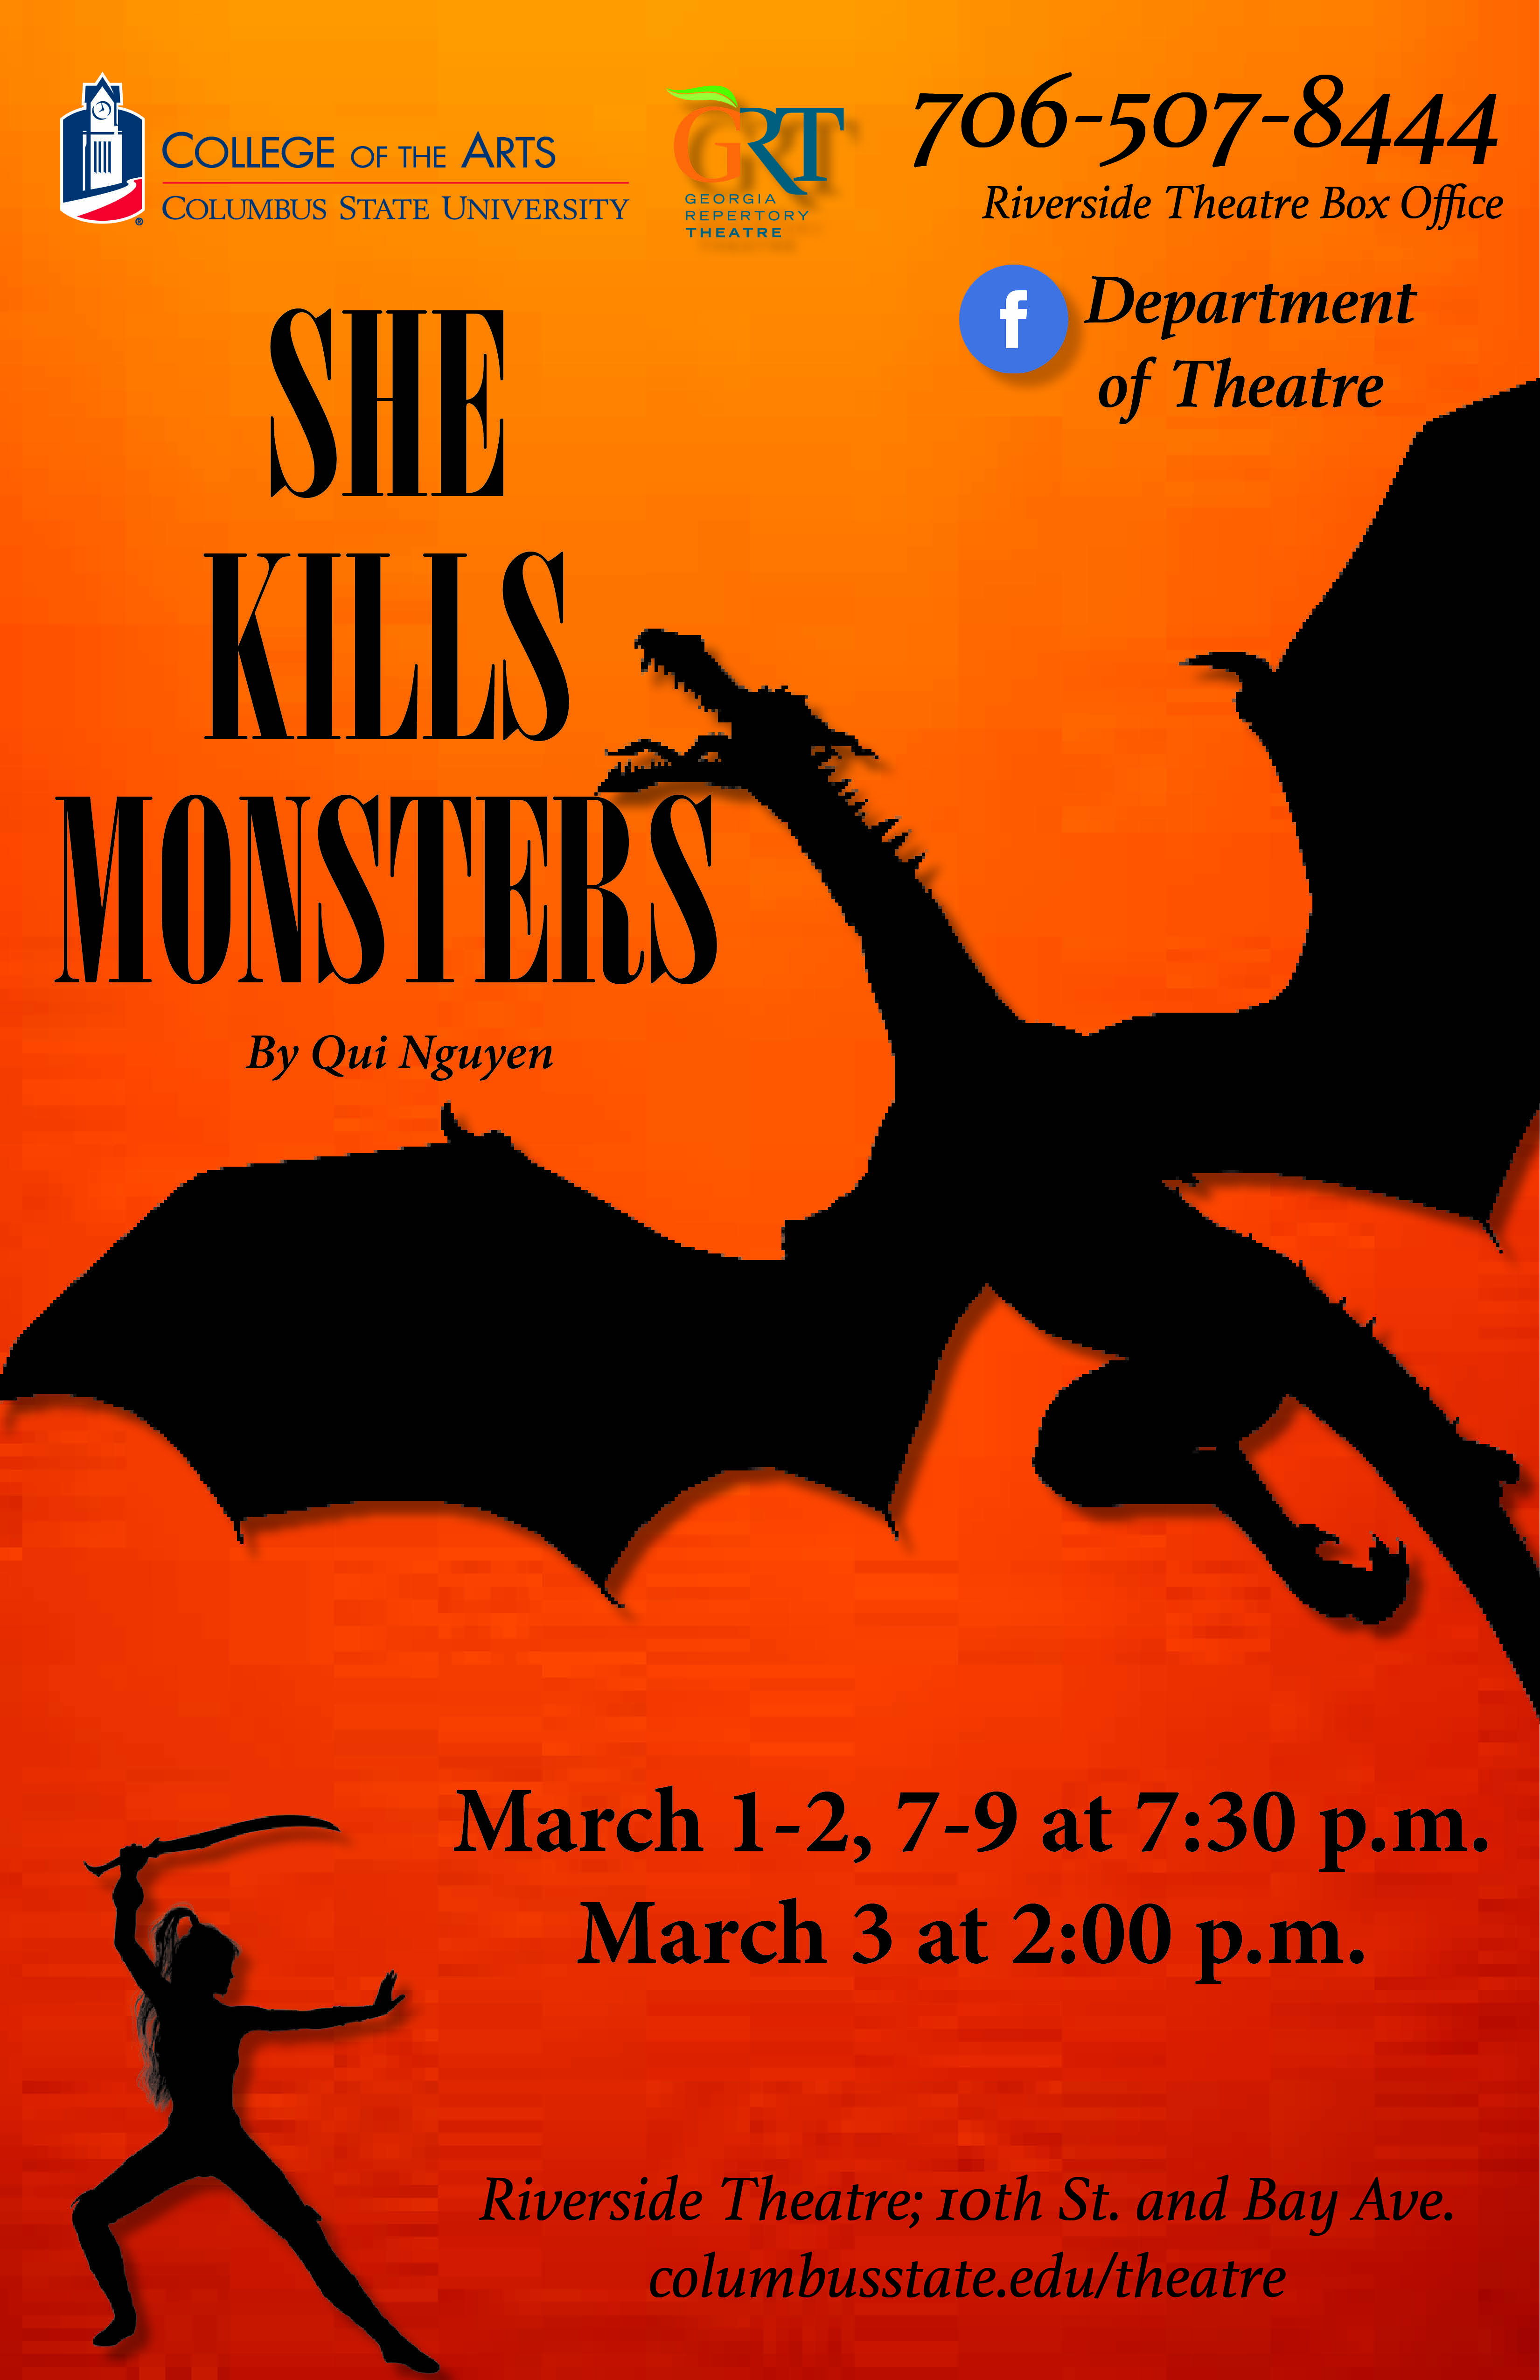 CSU Theatre: She Kills Monsters